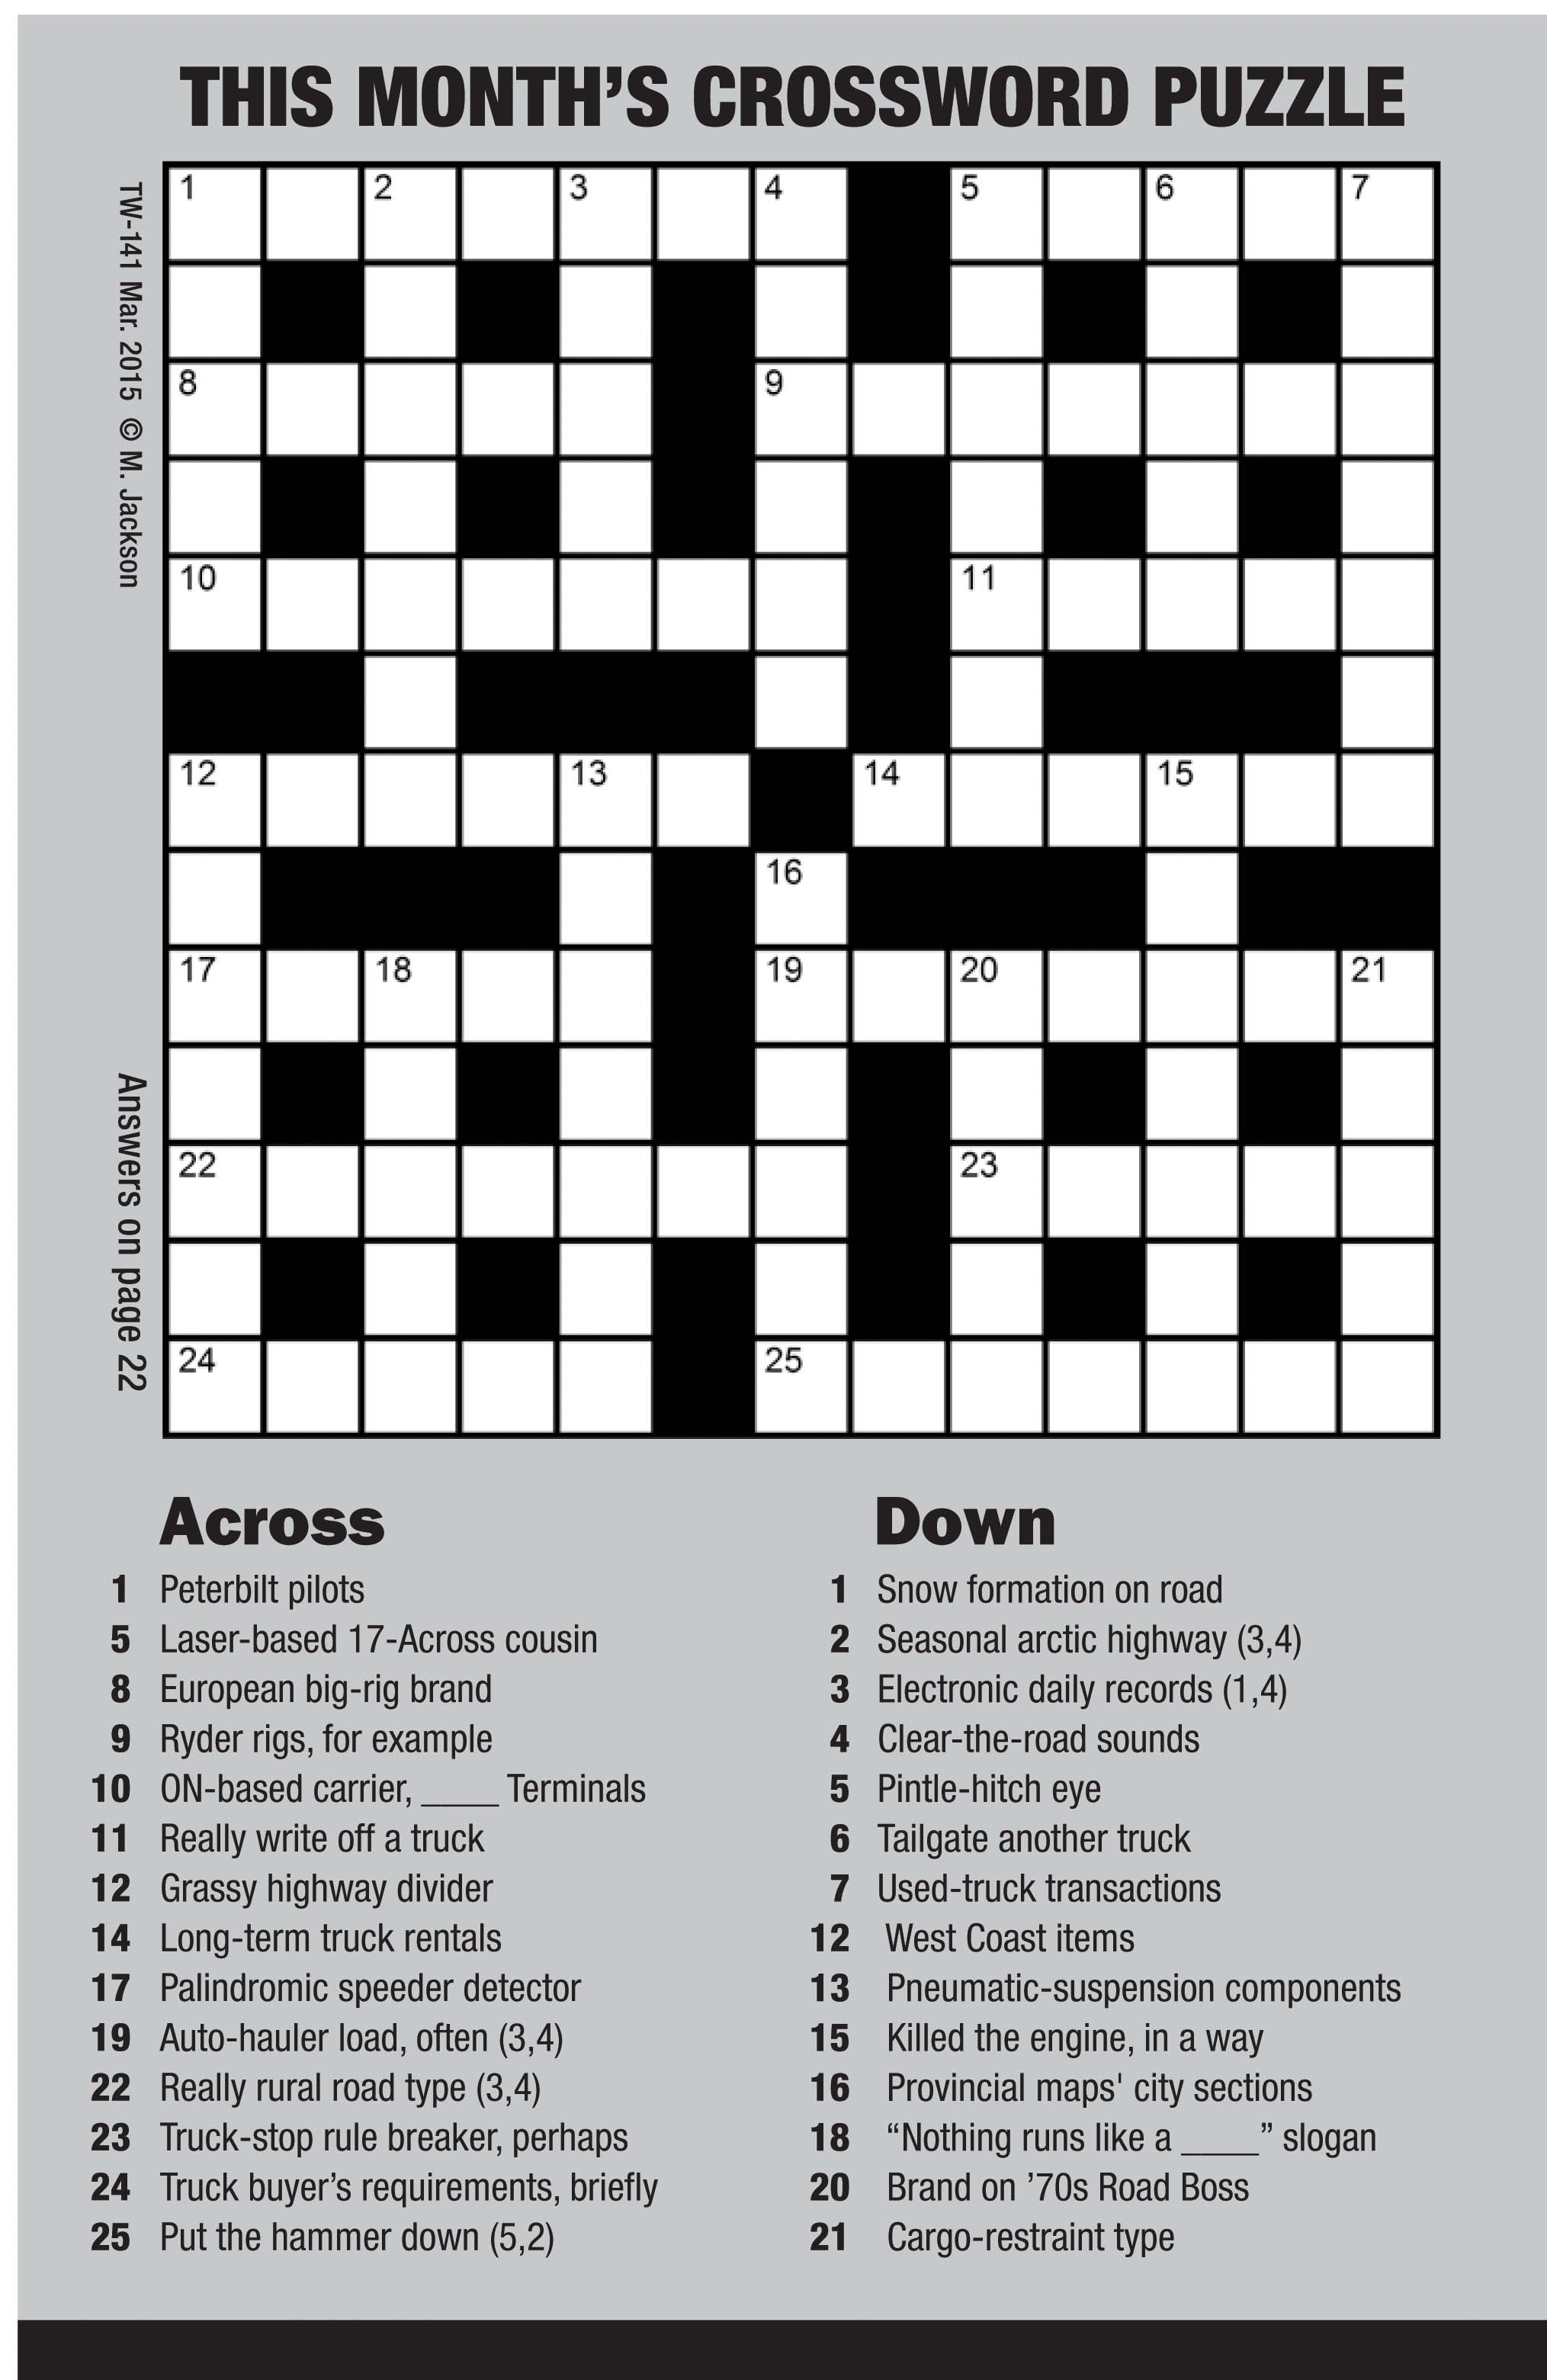 apa crossword puzzle This crossword solver will search its built in dictionary of over 250,000 entries for words that match patterns with missing  crossword puzzle.